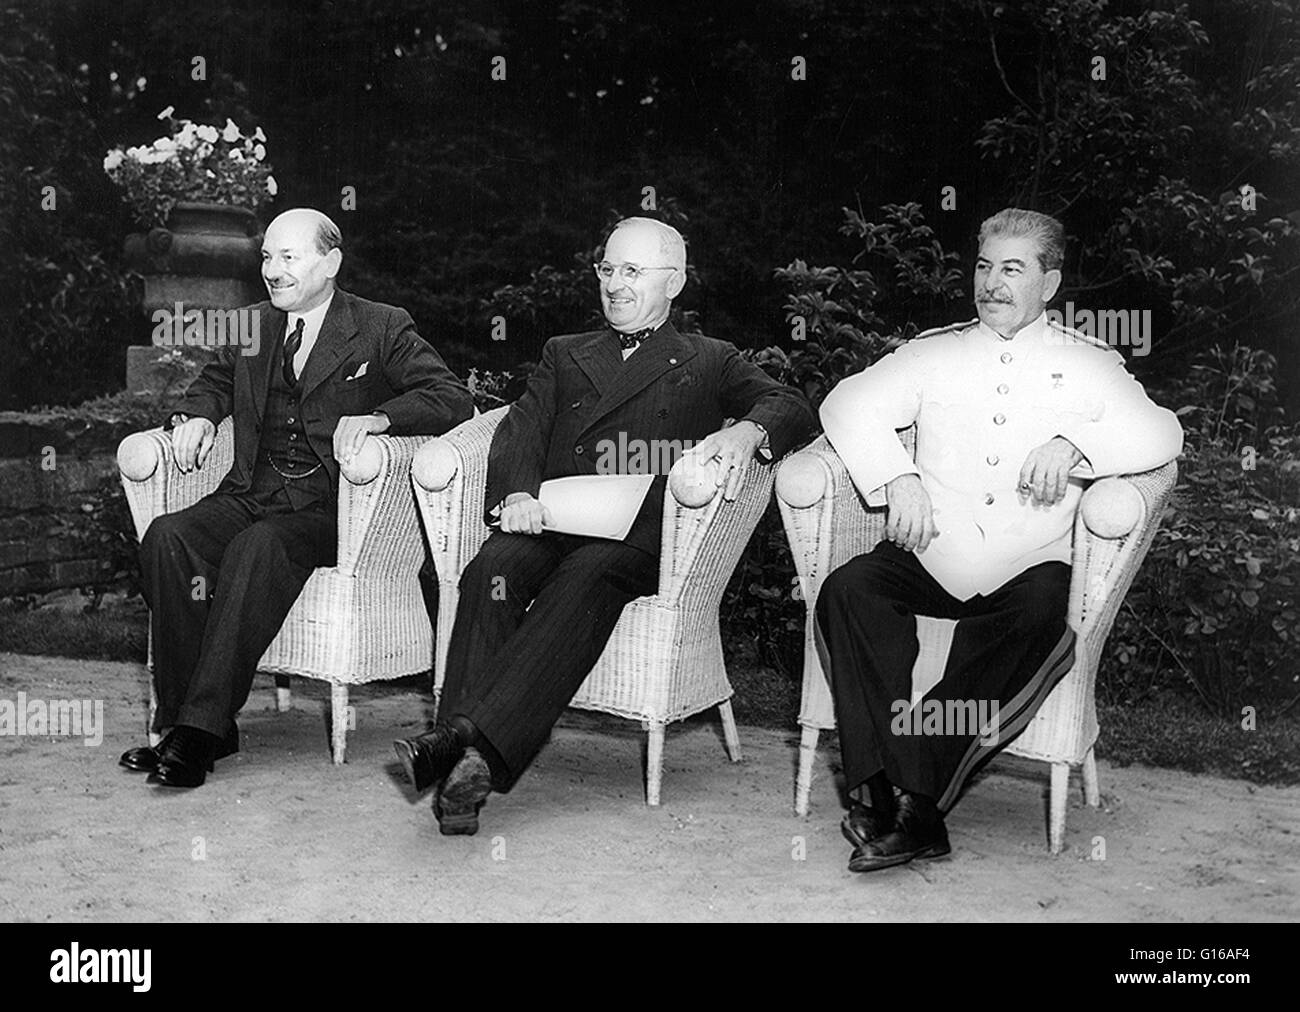 Potsdam Conference. Clement Attlee, Harry Truman, and Joseph Stalin, seated outdoors, August 1, 1945. The Potsdam - Stock Image